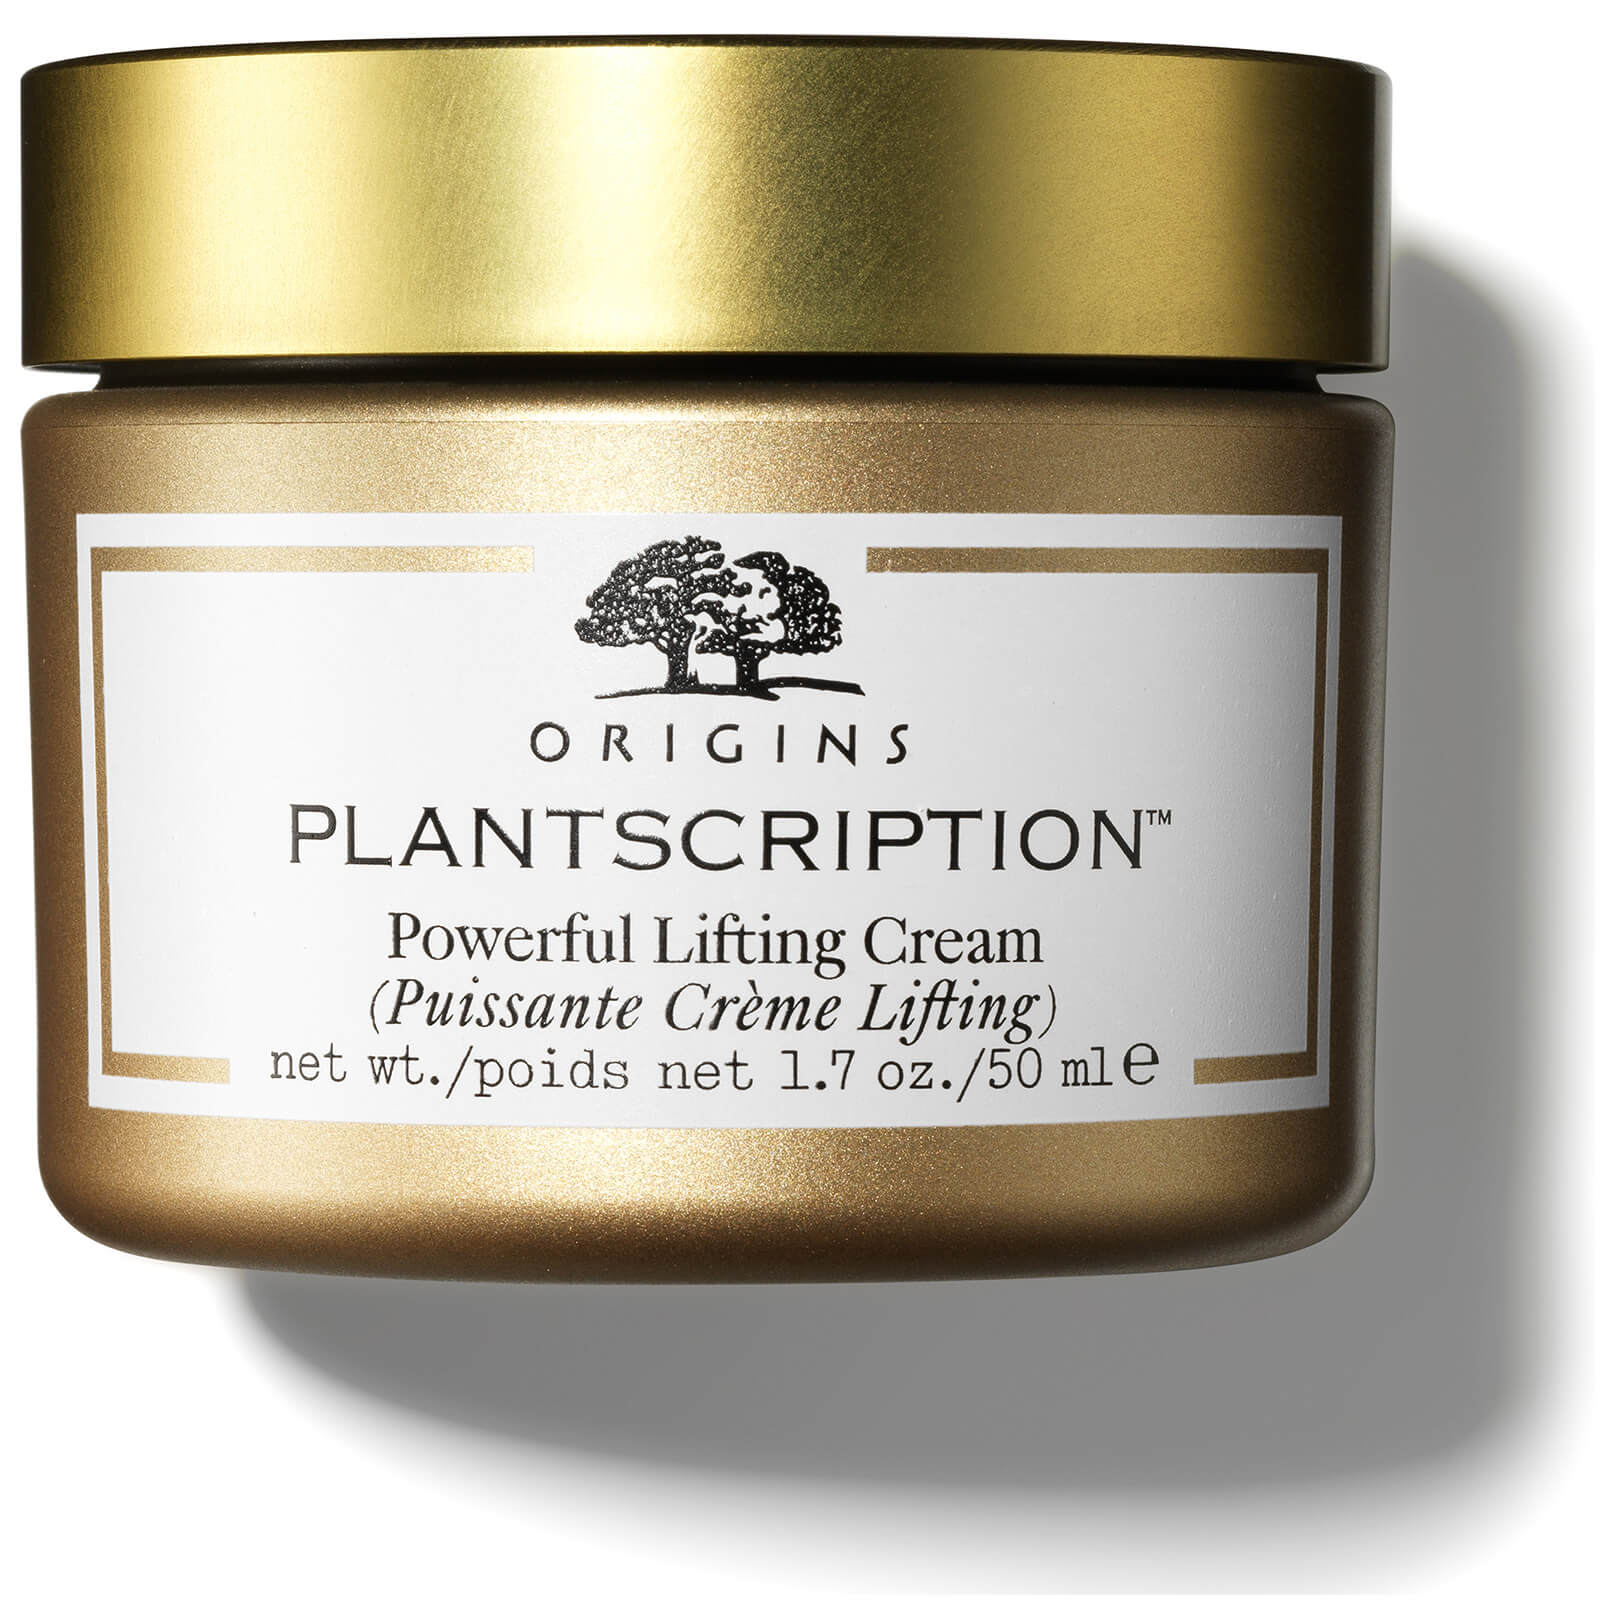 Origins Plantscription™ Powerful Lifting Cream